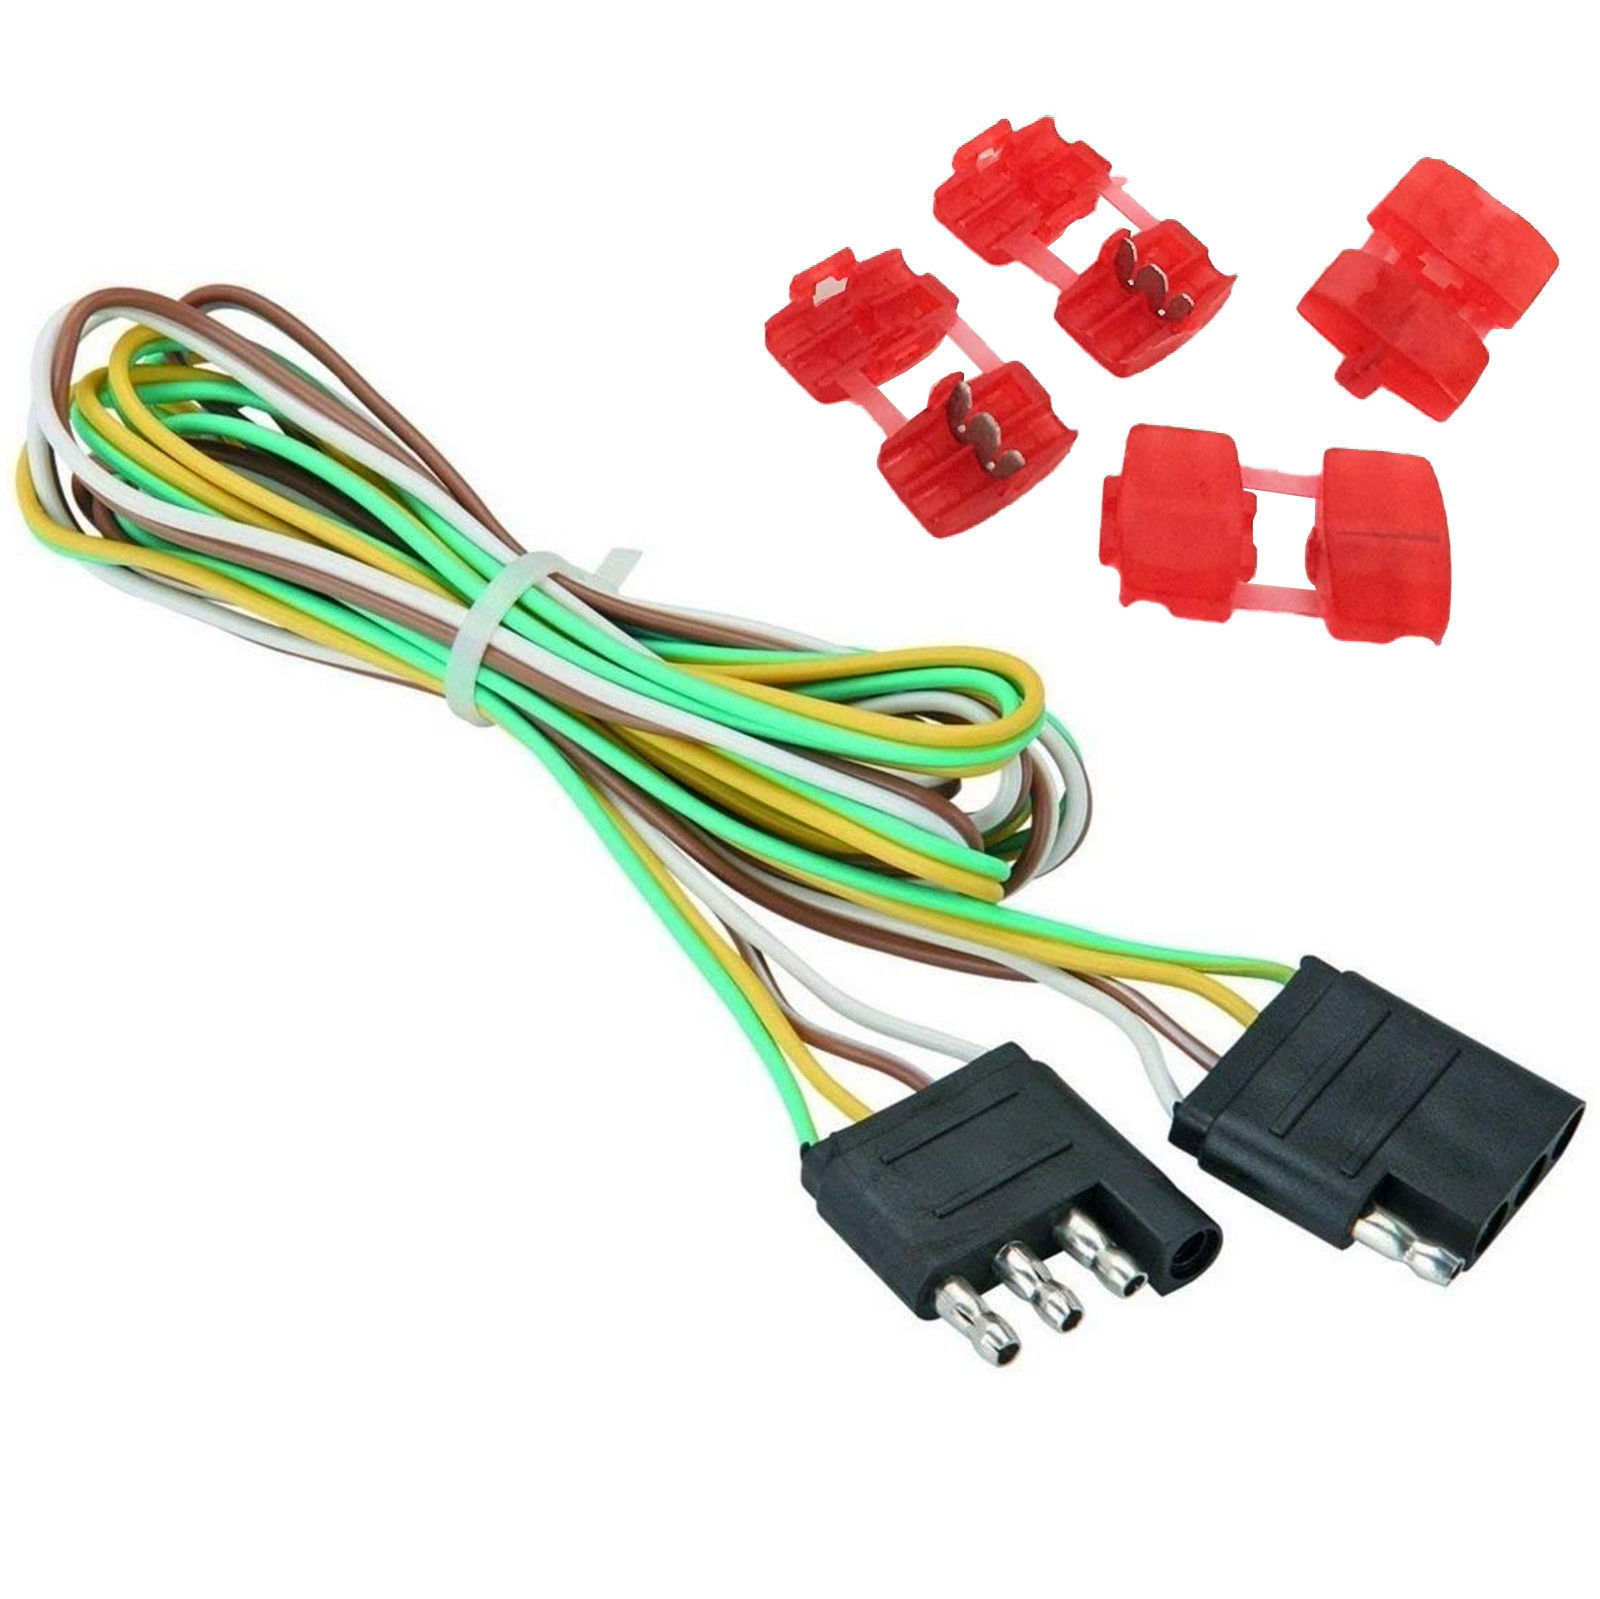 hight resolution of 48 trailer light wire 4 way flat extension wiring harness plug cord rv boat car econosuperstore